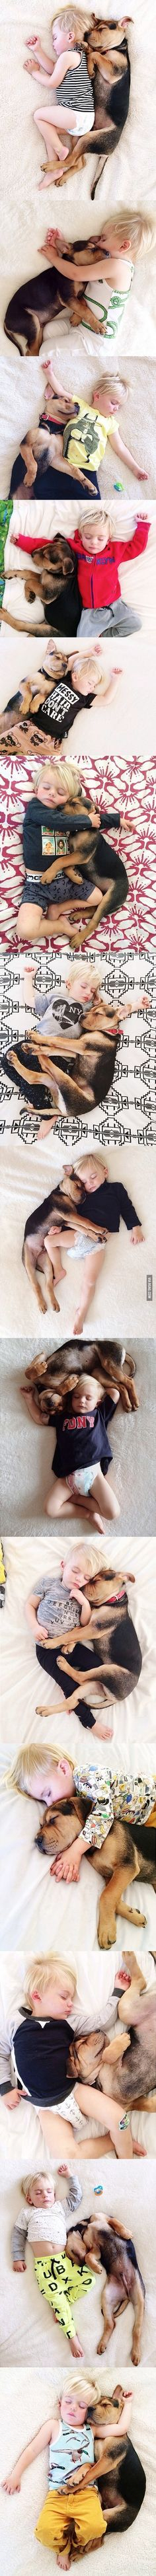 http://www.siamtrick.com A mother photographs her son and his puppy taking a nap everyday. I would love to see more pictures of this precious boy and his dog as they grow together. These pictures are beautiful. Thank you for sharing them. XO